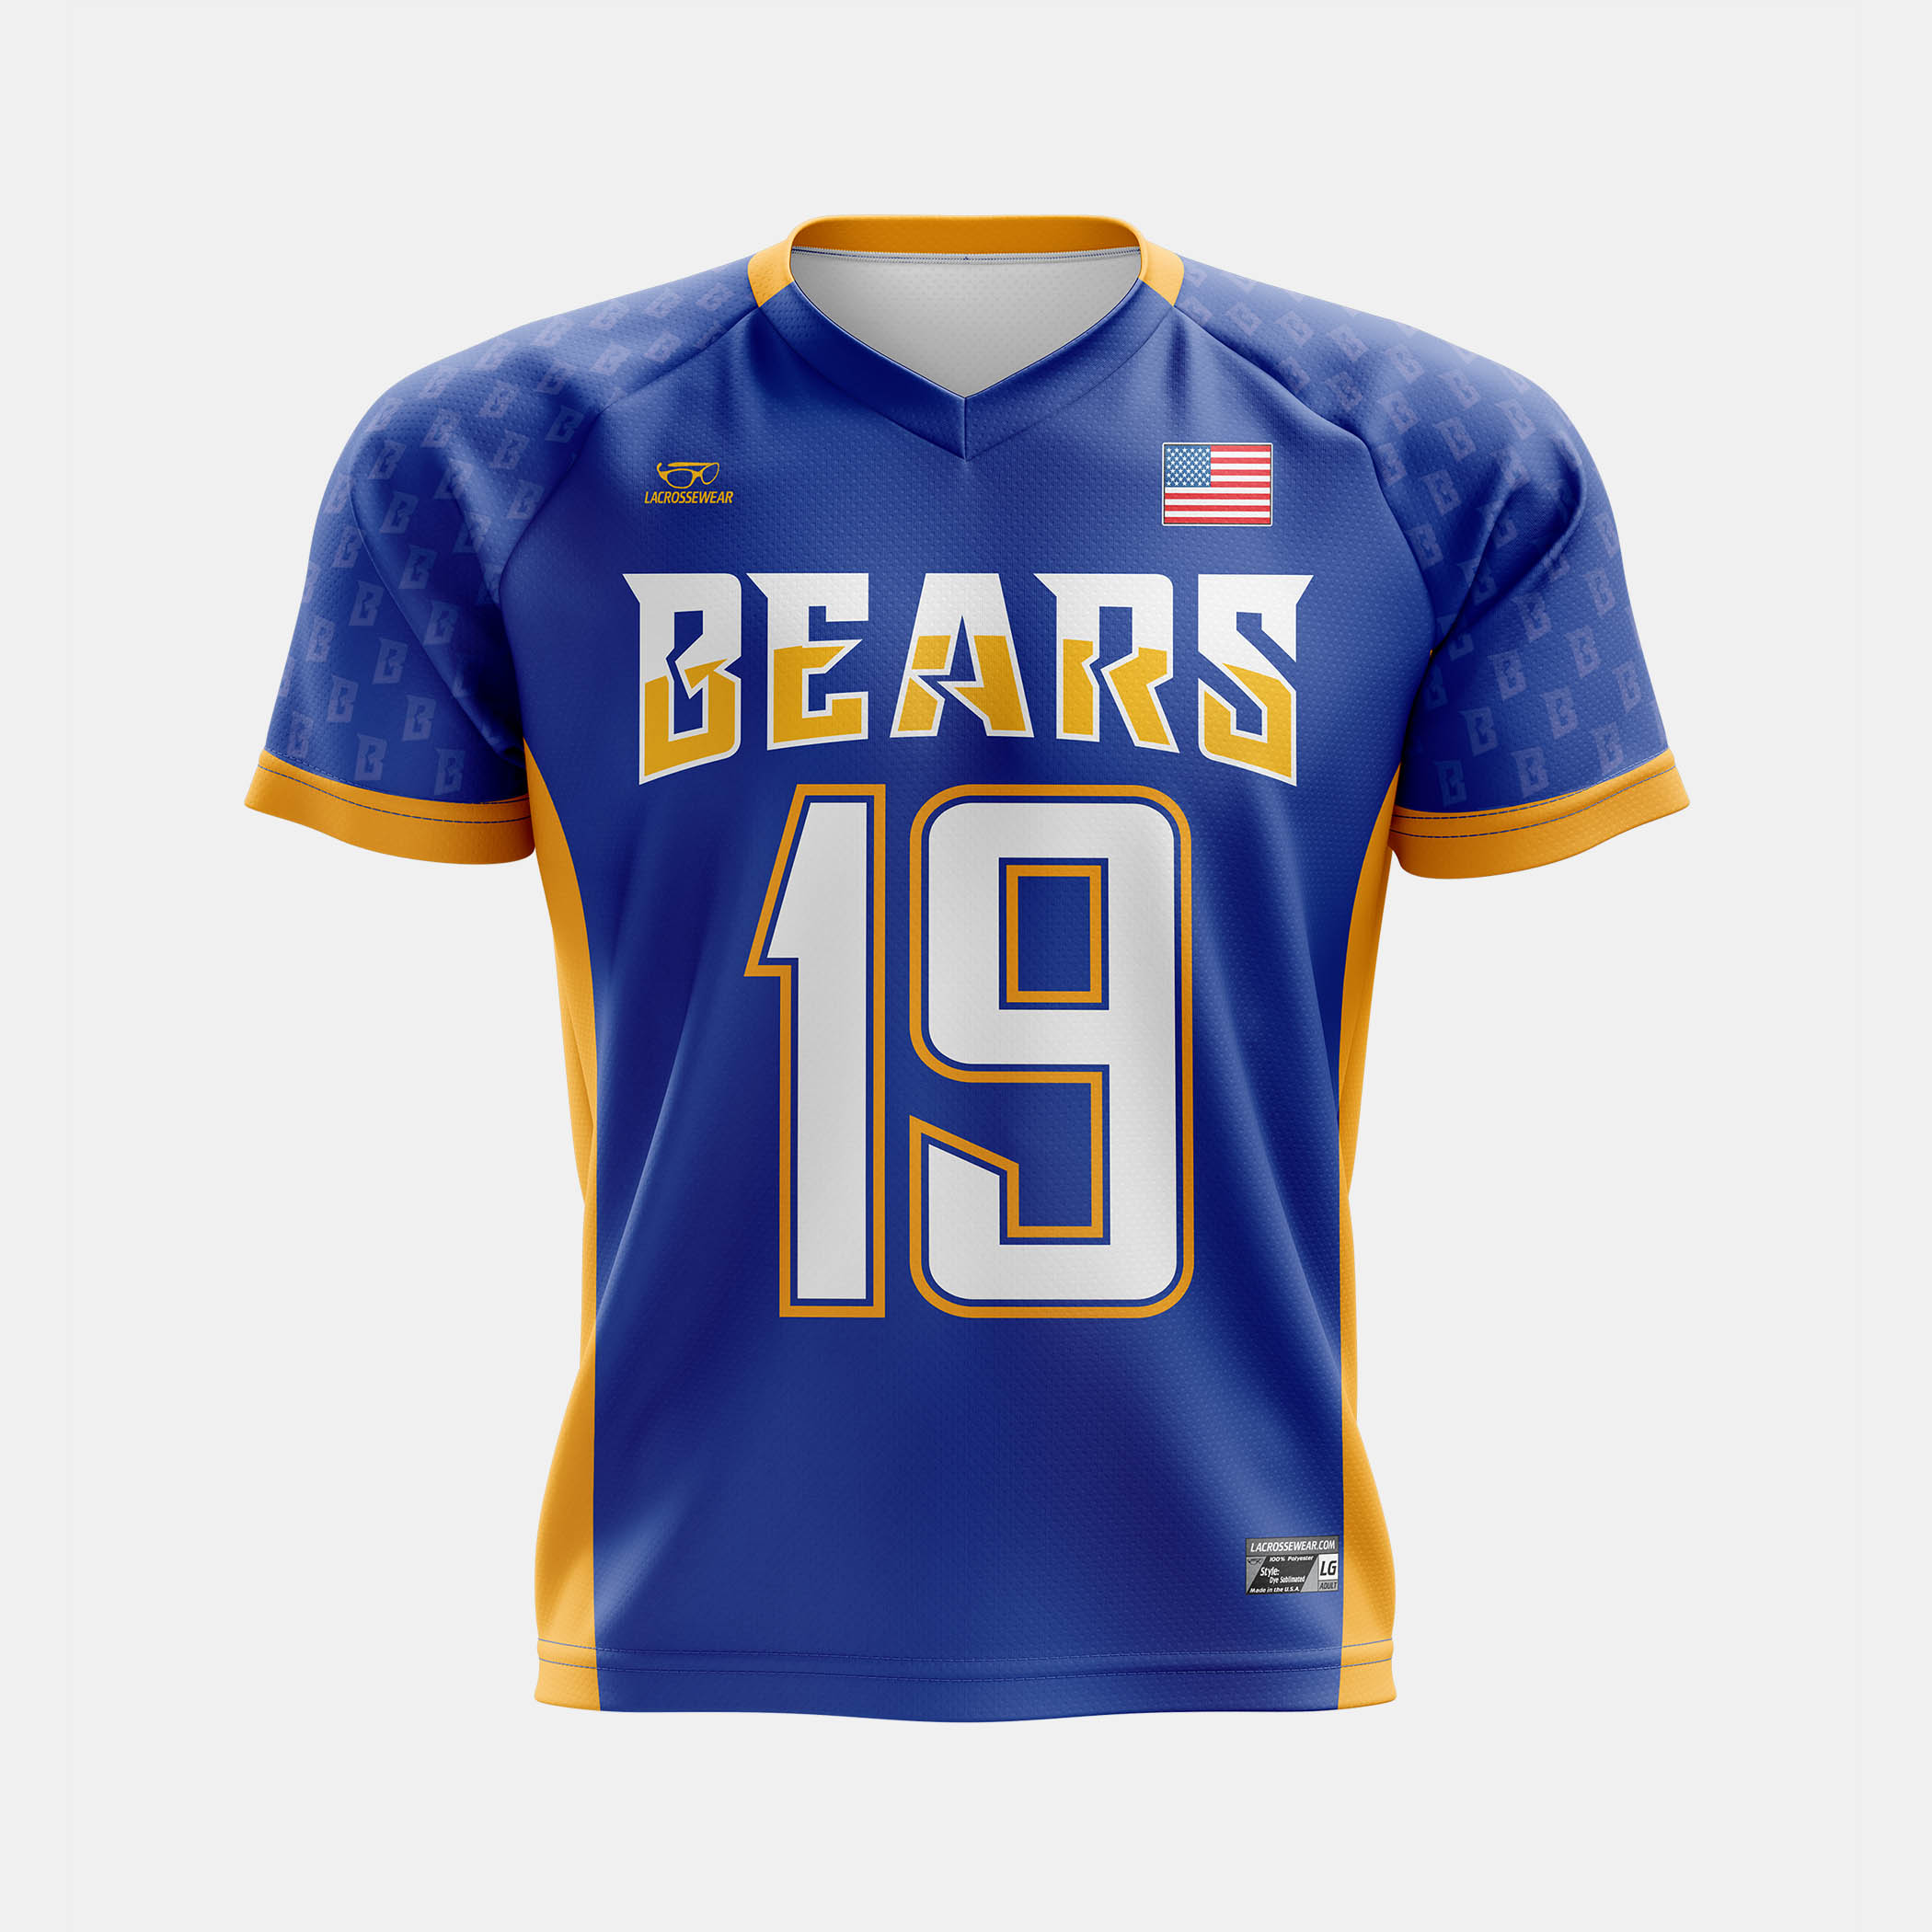 Bears Lax Jersey Mock Front View